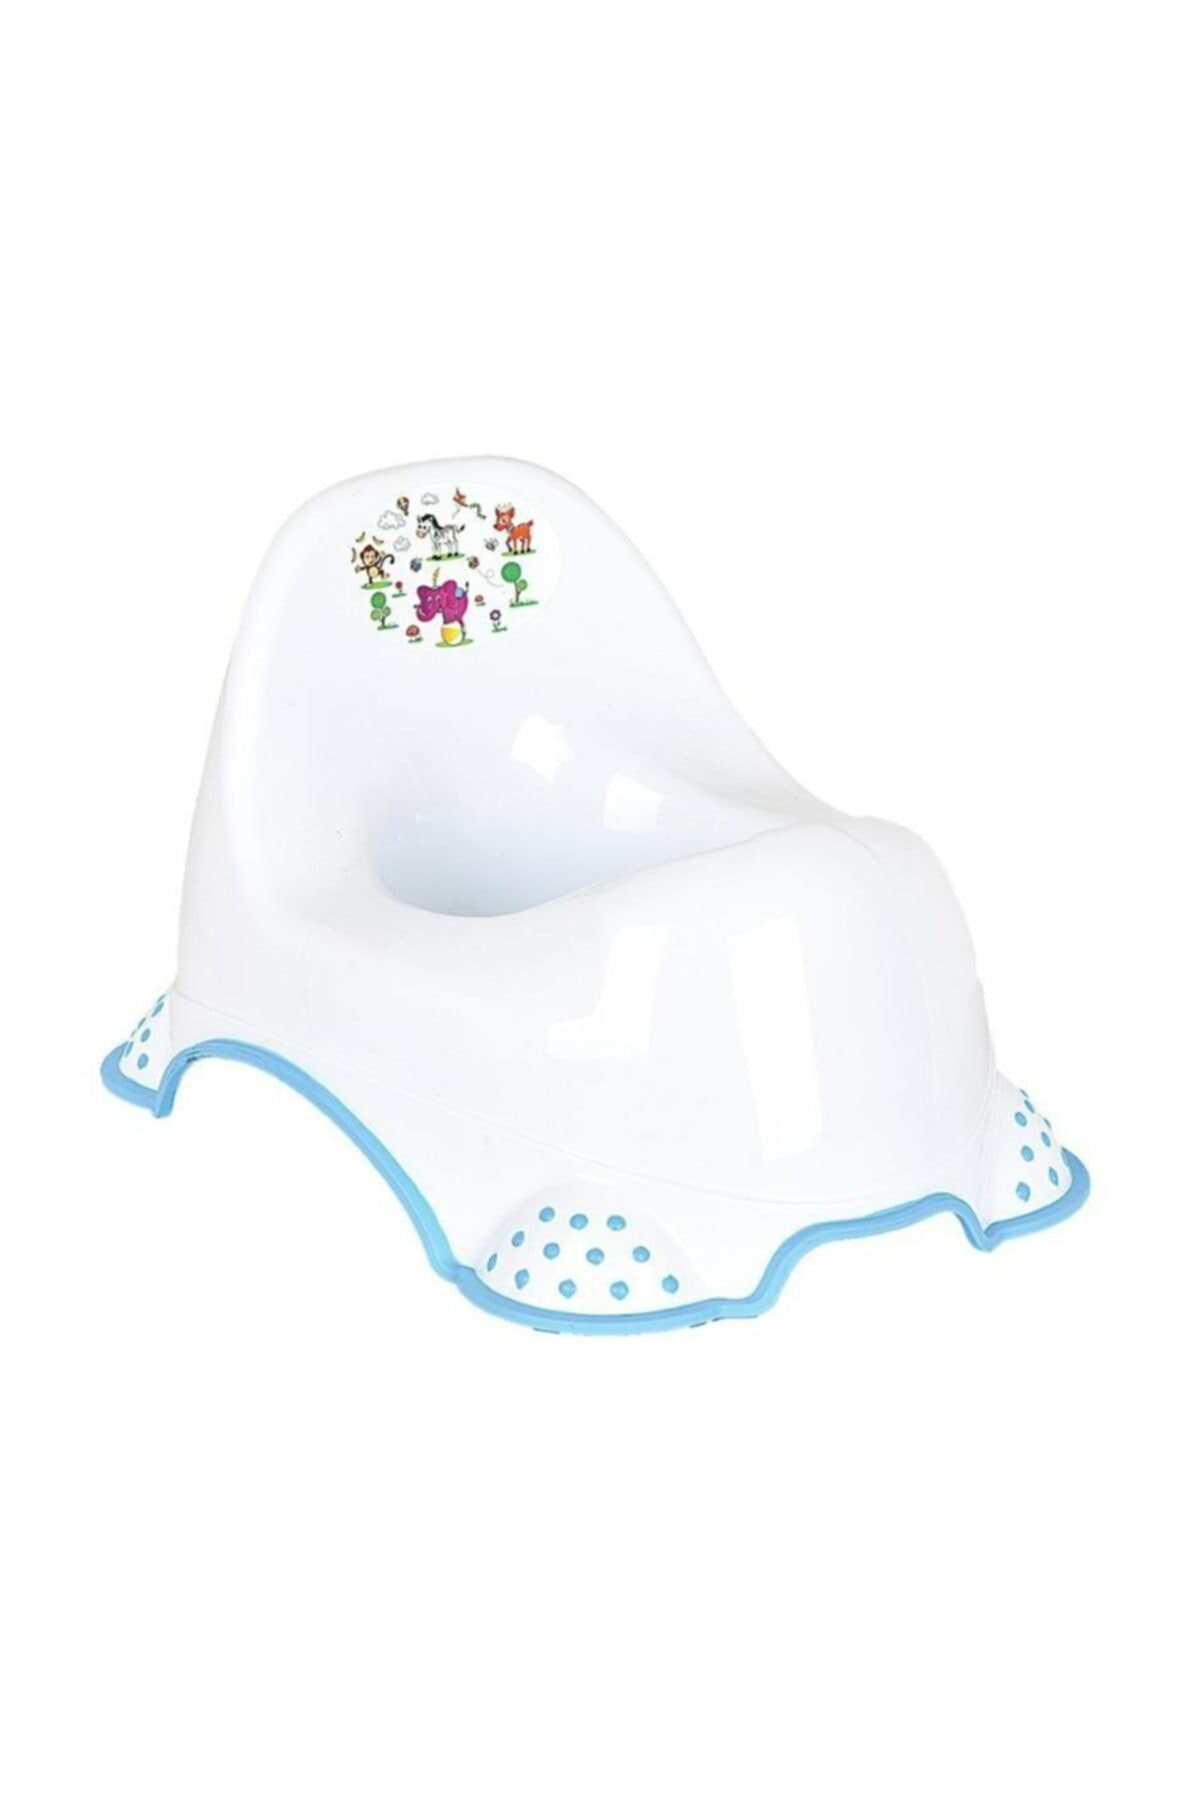 Child Potty Comfortable Easy Use Cute Baby Toilet Seat Boy And Girl Trainer Seat WC Potty Good Quality Plastic Pot toilet seat hinges screws wc hole fixing easy installation 2 pack